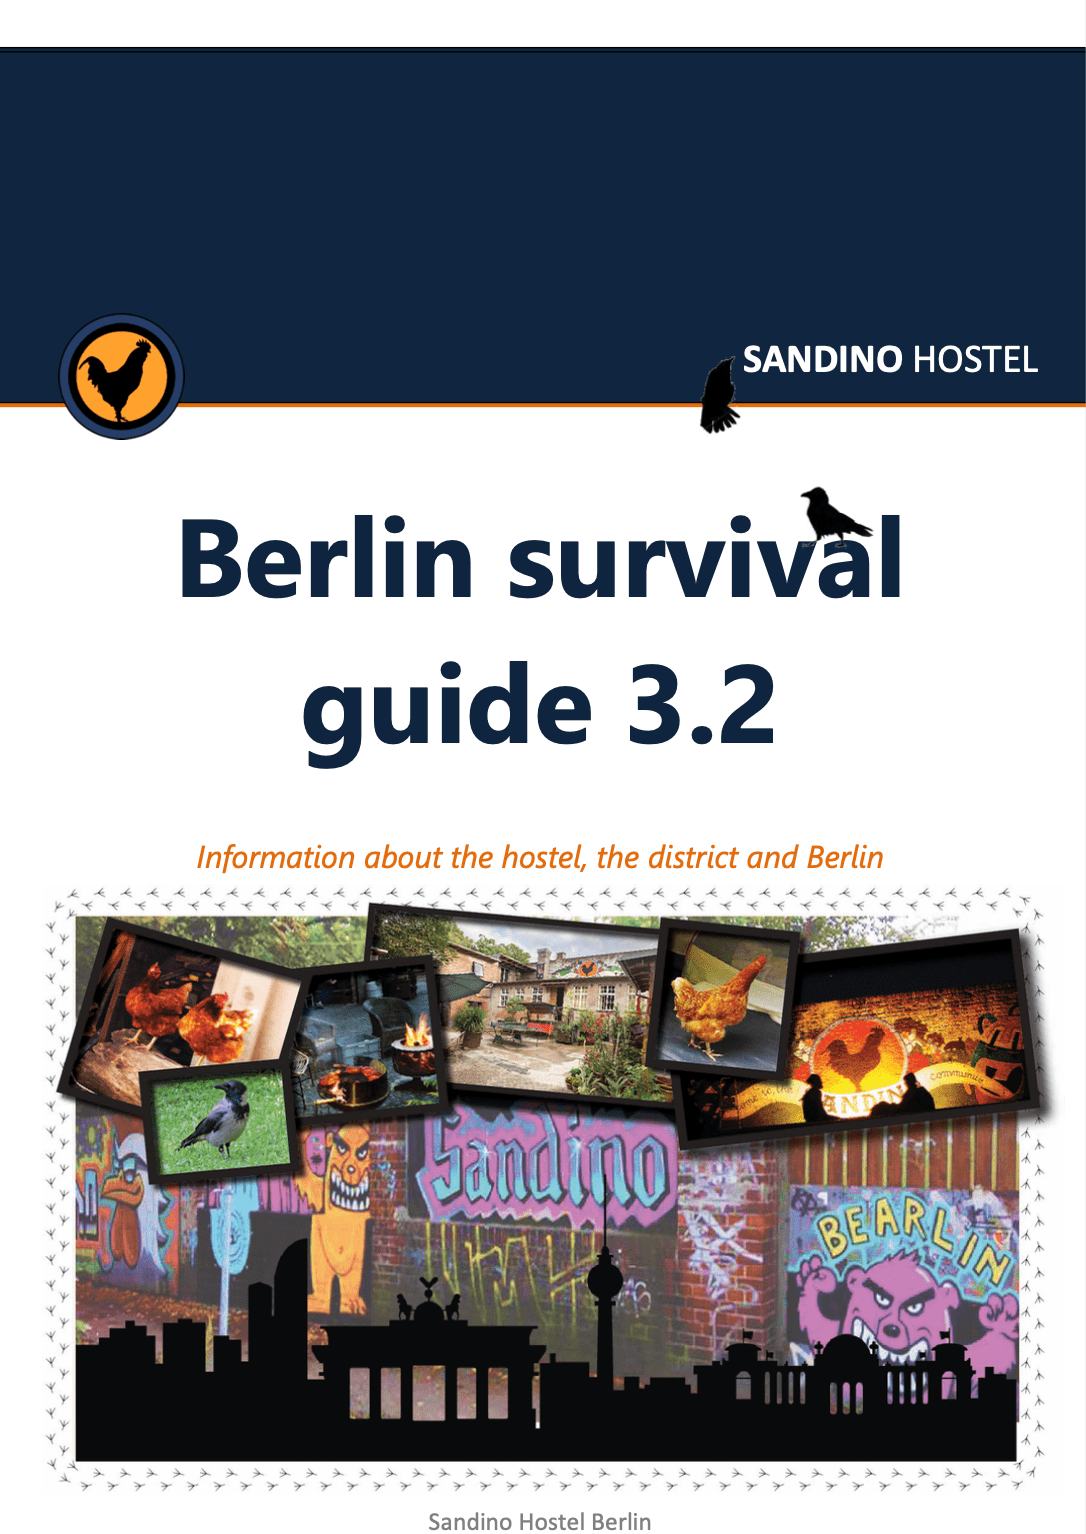 Berlin survival guide